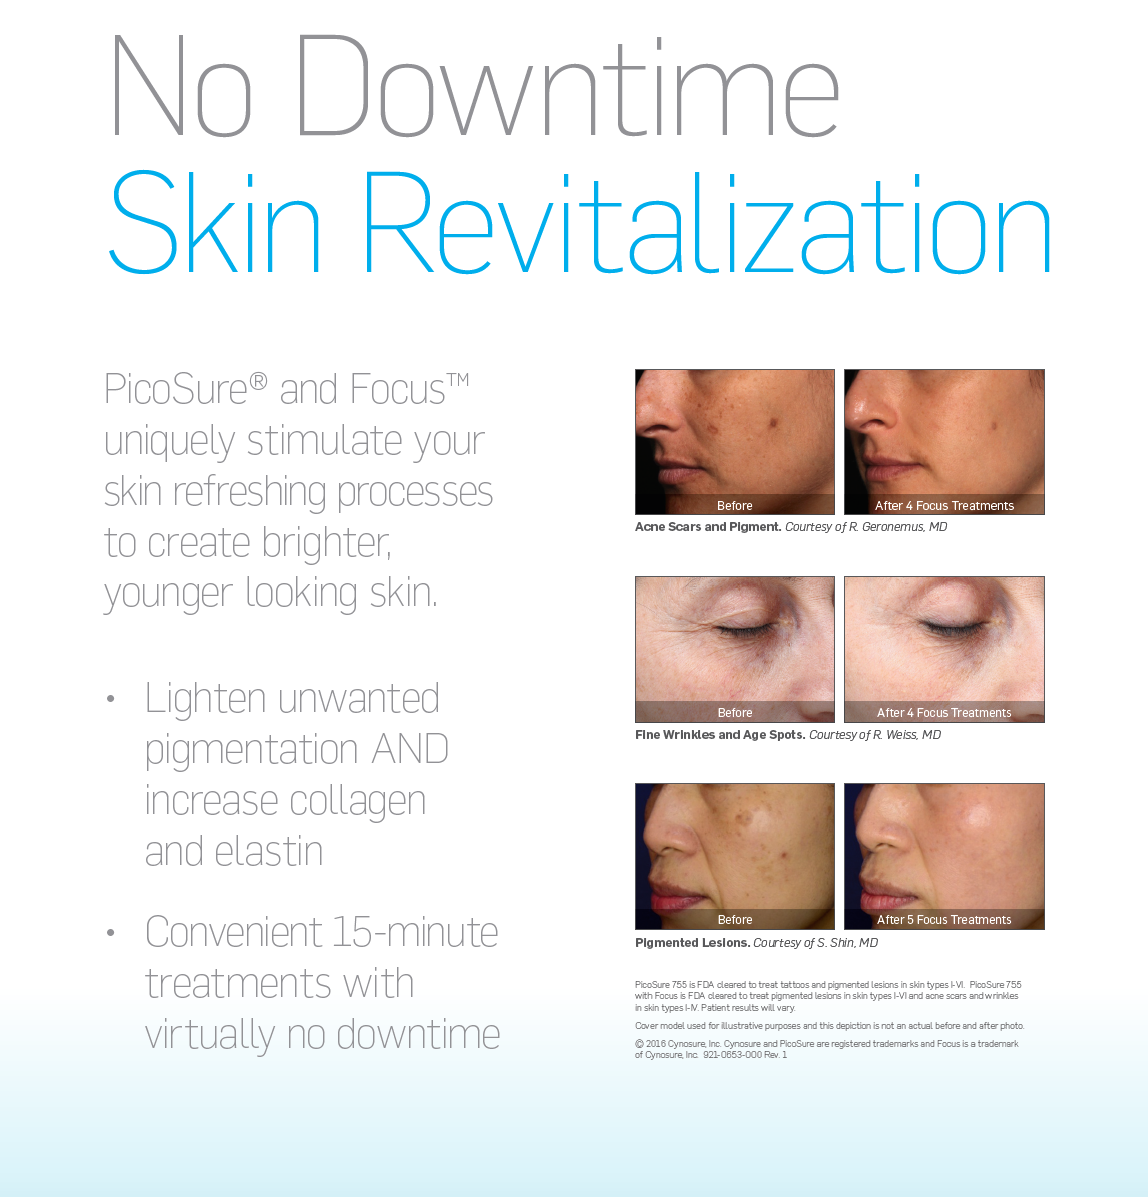 PicoSure Focus Skin Mansfield Cosmetic Surgery Center